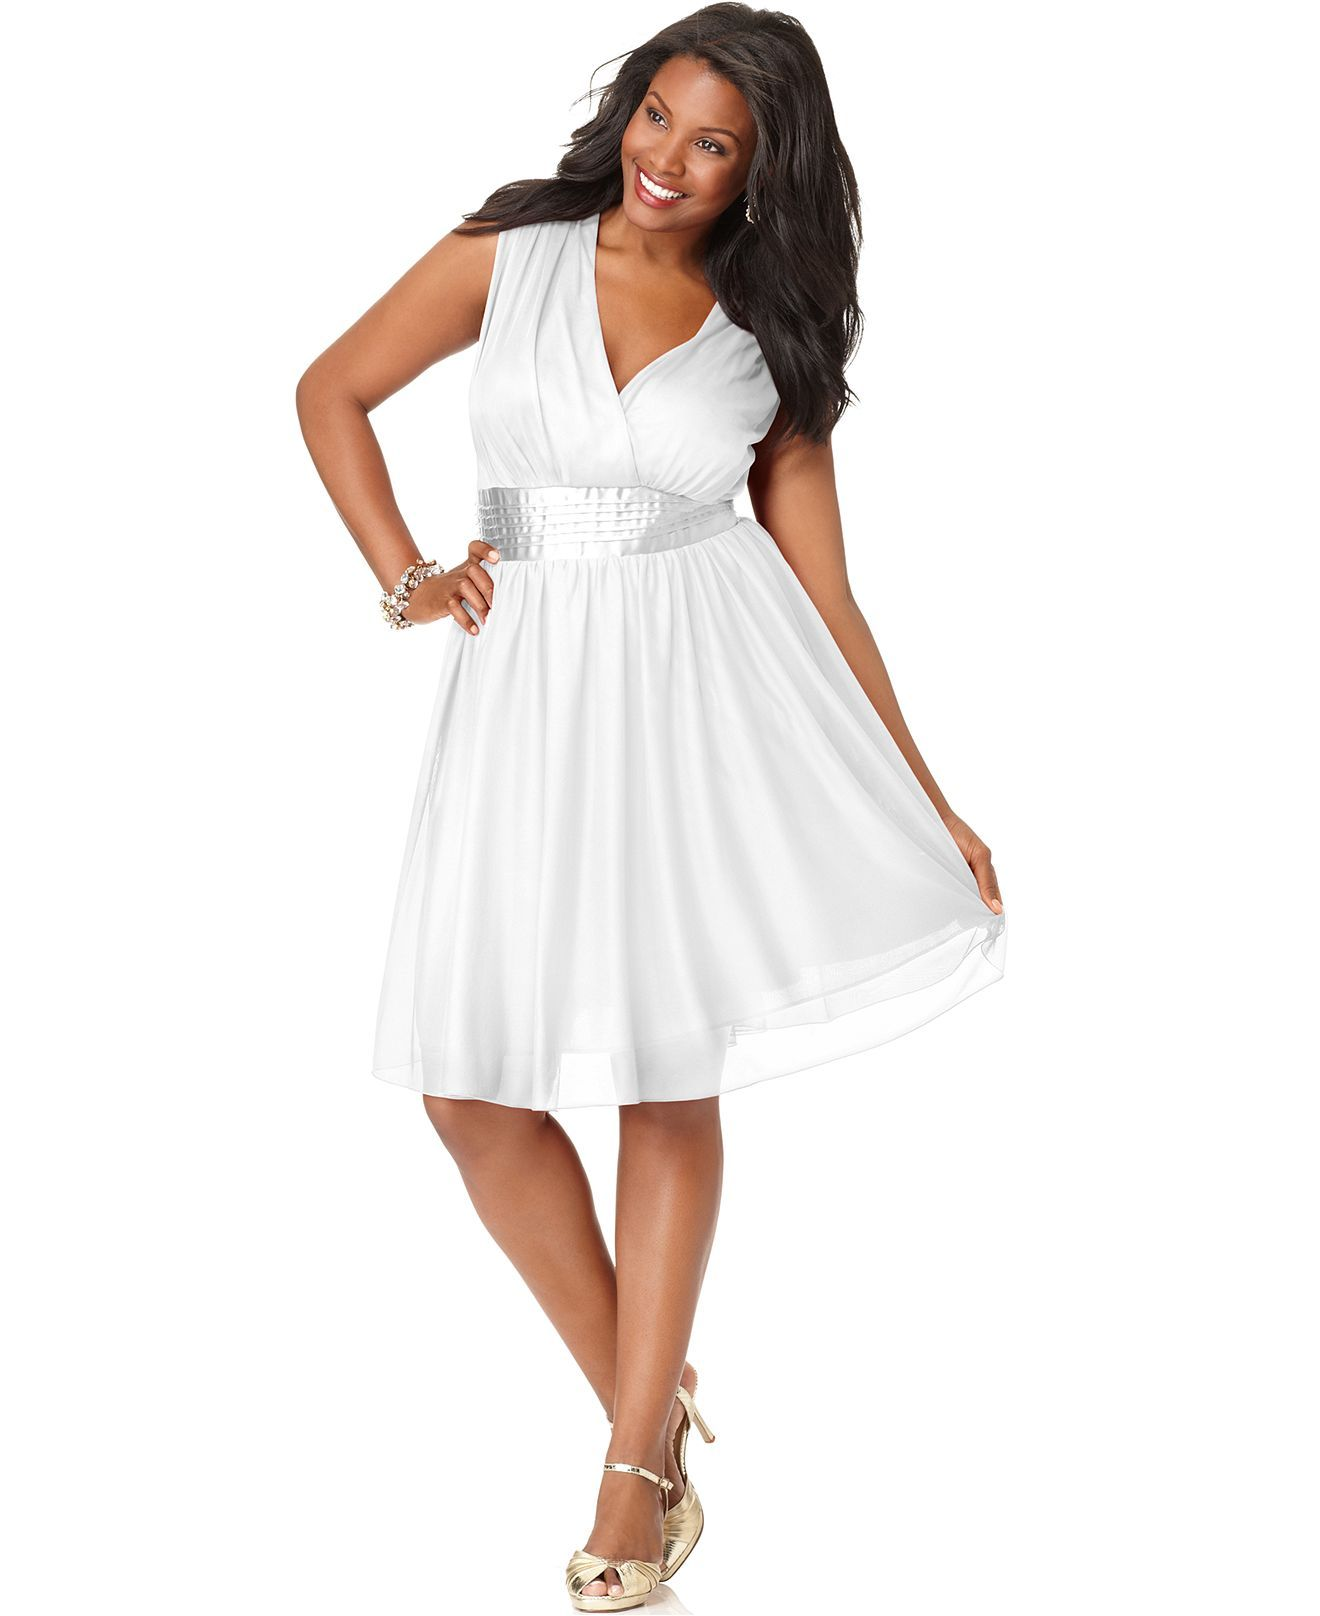 Trixxi Plus Size Dress, Sleeveless Banded Empire A-Line ...